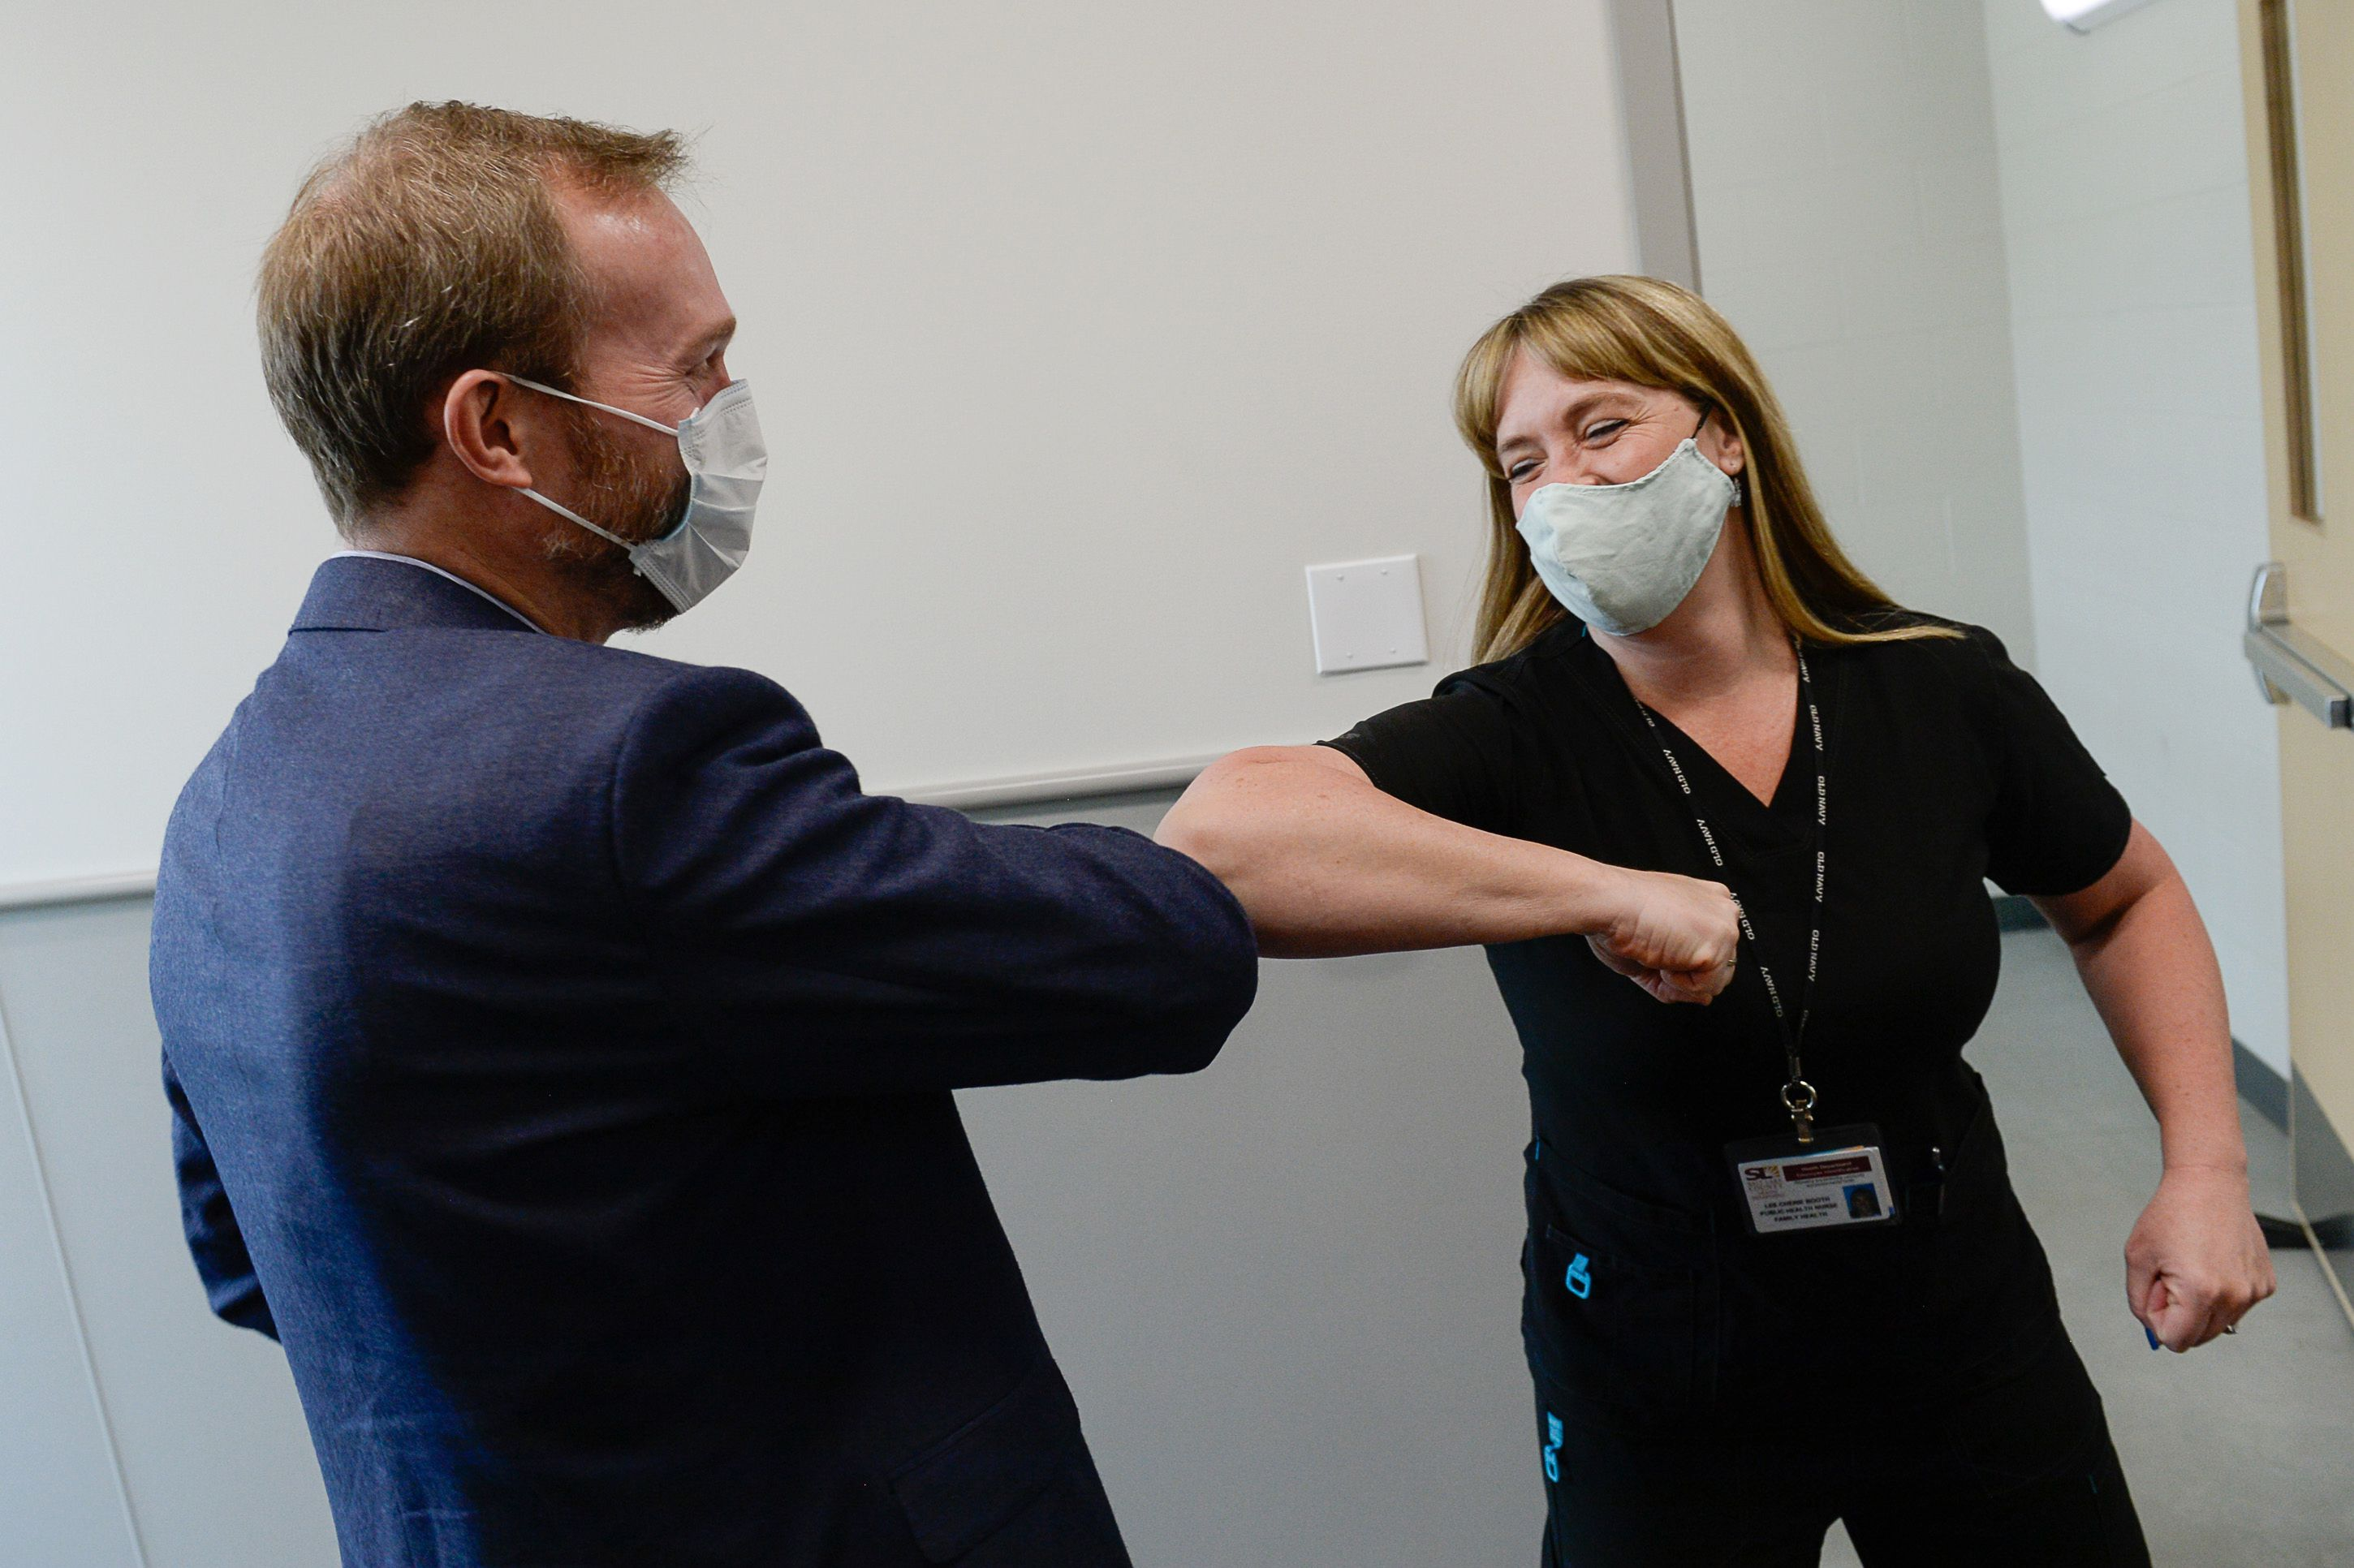 (Francisco Kjolseth     The Salt Lake Tribune) Congressman Ben McAdams, D-Utah, greets public health nurse Lee Cherie Booth at the Salt Lake County Public Health Center on Tuesday, April 28, 2020, where he thanked employees who are producing vital data about the source of the county's COVID-19 infections and how it may have spread among county residents.